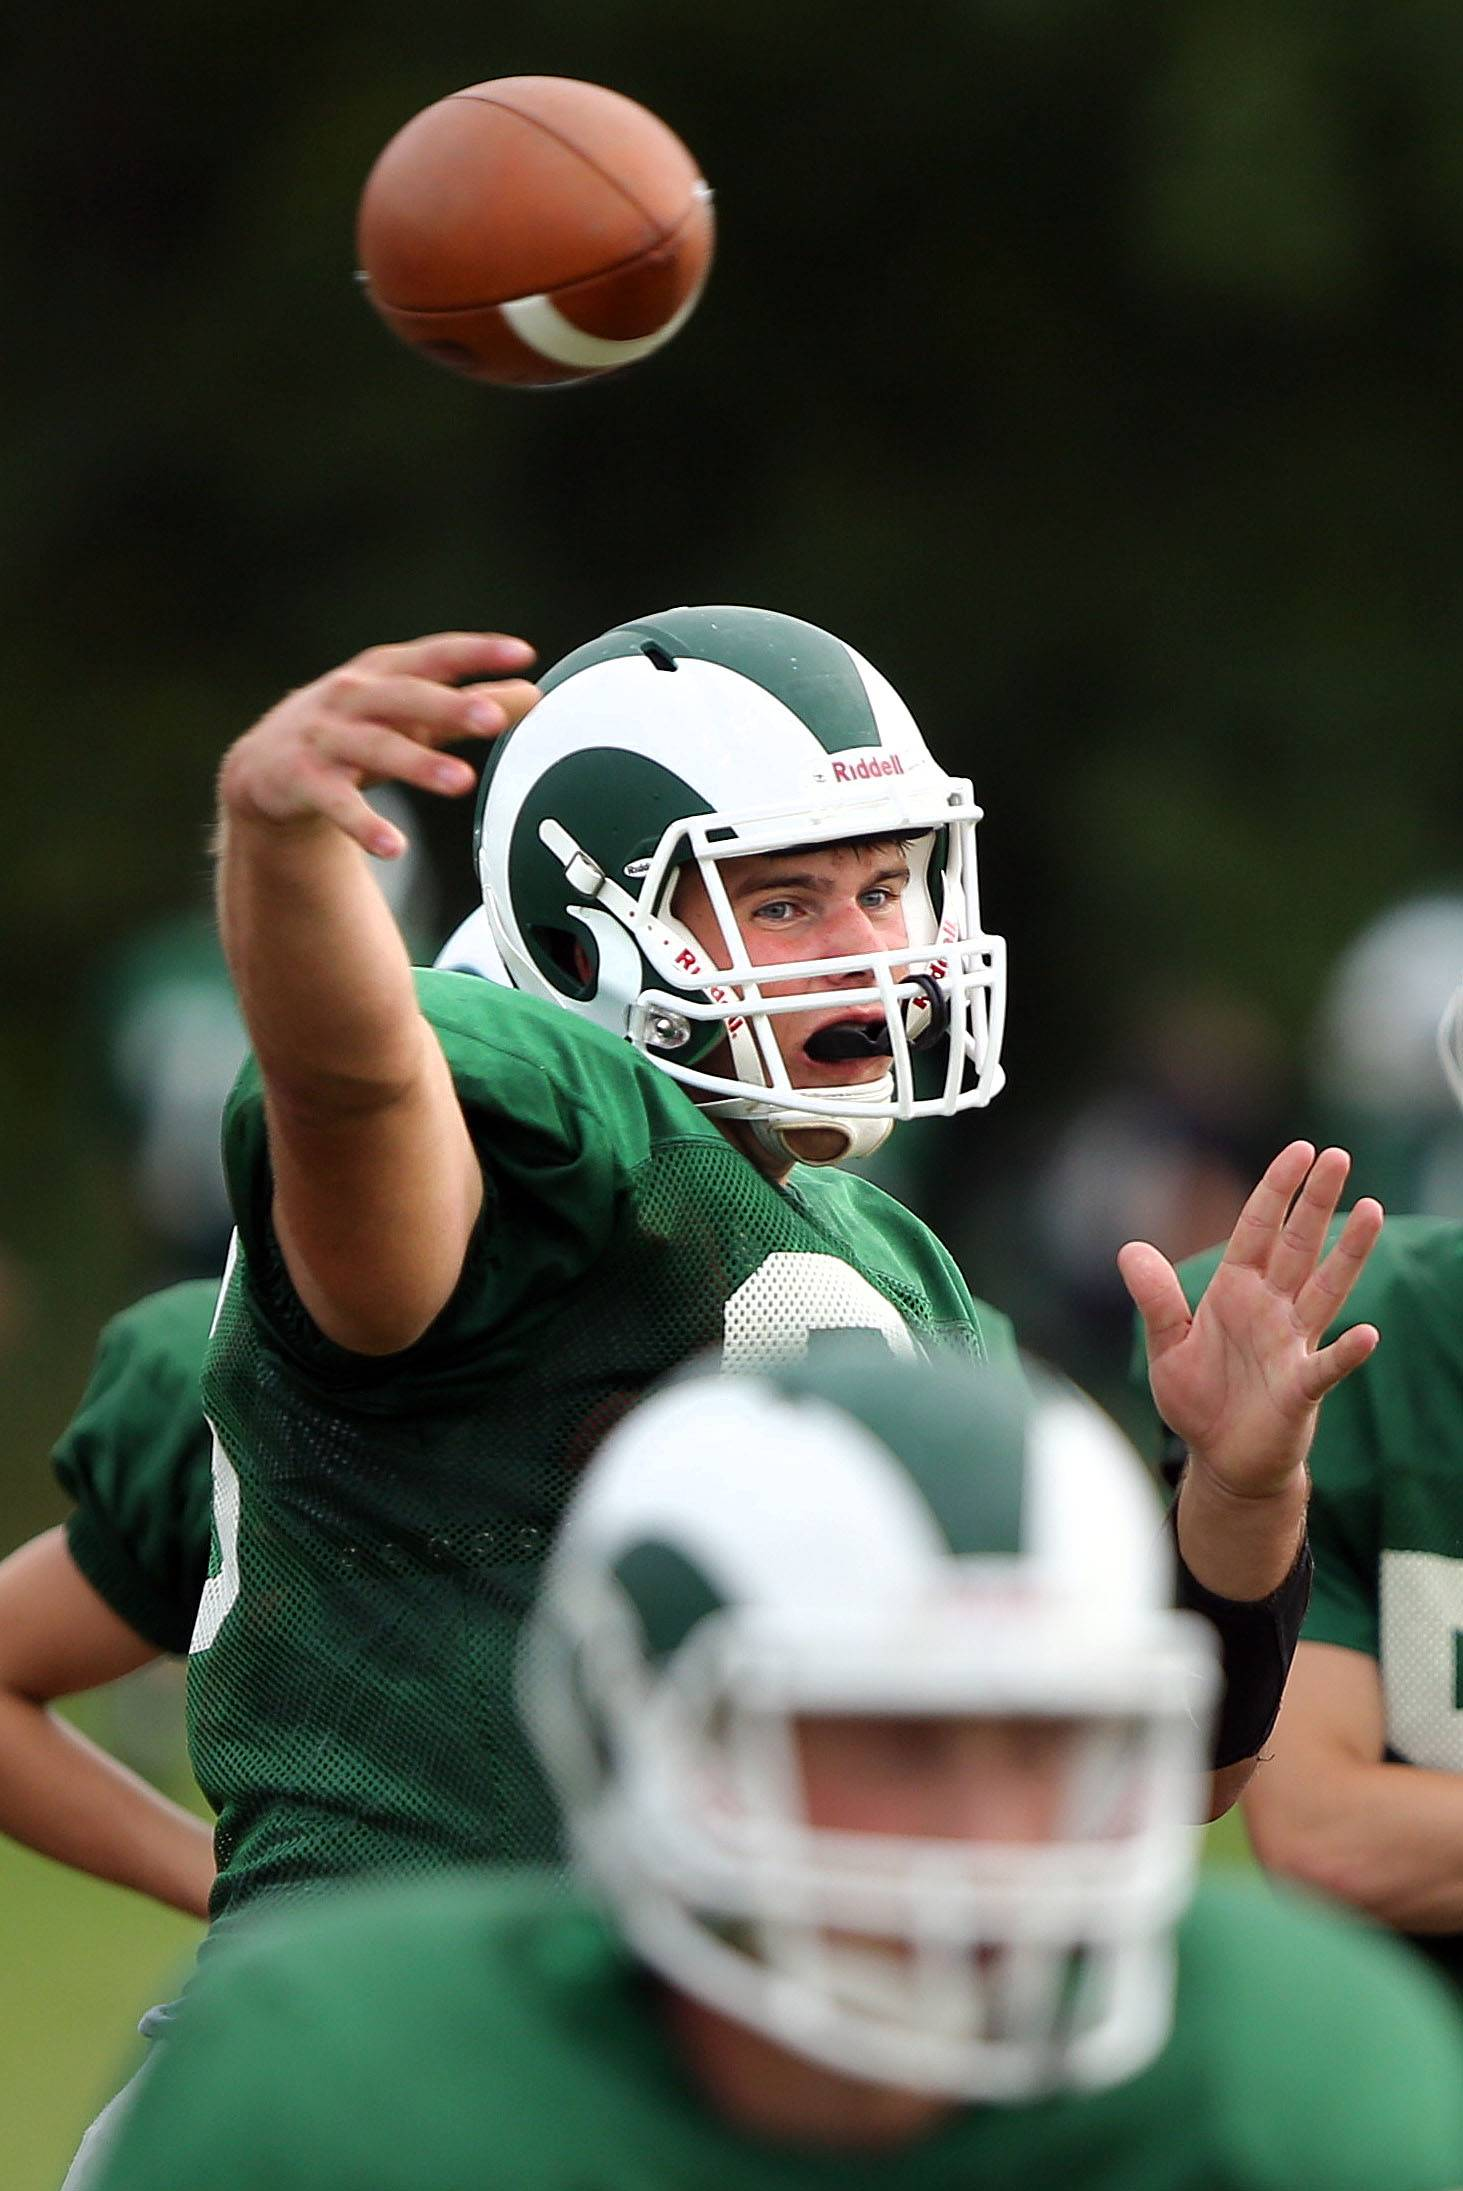 Grayslake Central's Luke Shepherd throws during practice Wednesday afternoon at Central Park in Grayslake. Take a look at the bigger football picture for Lake County in Friday's Football Focus section.